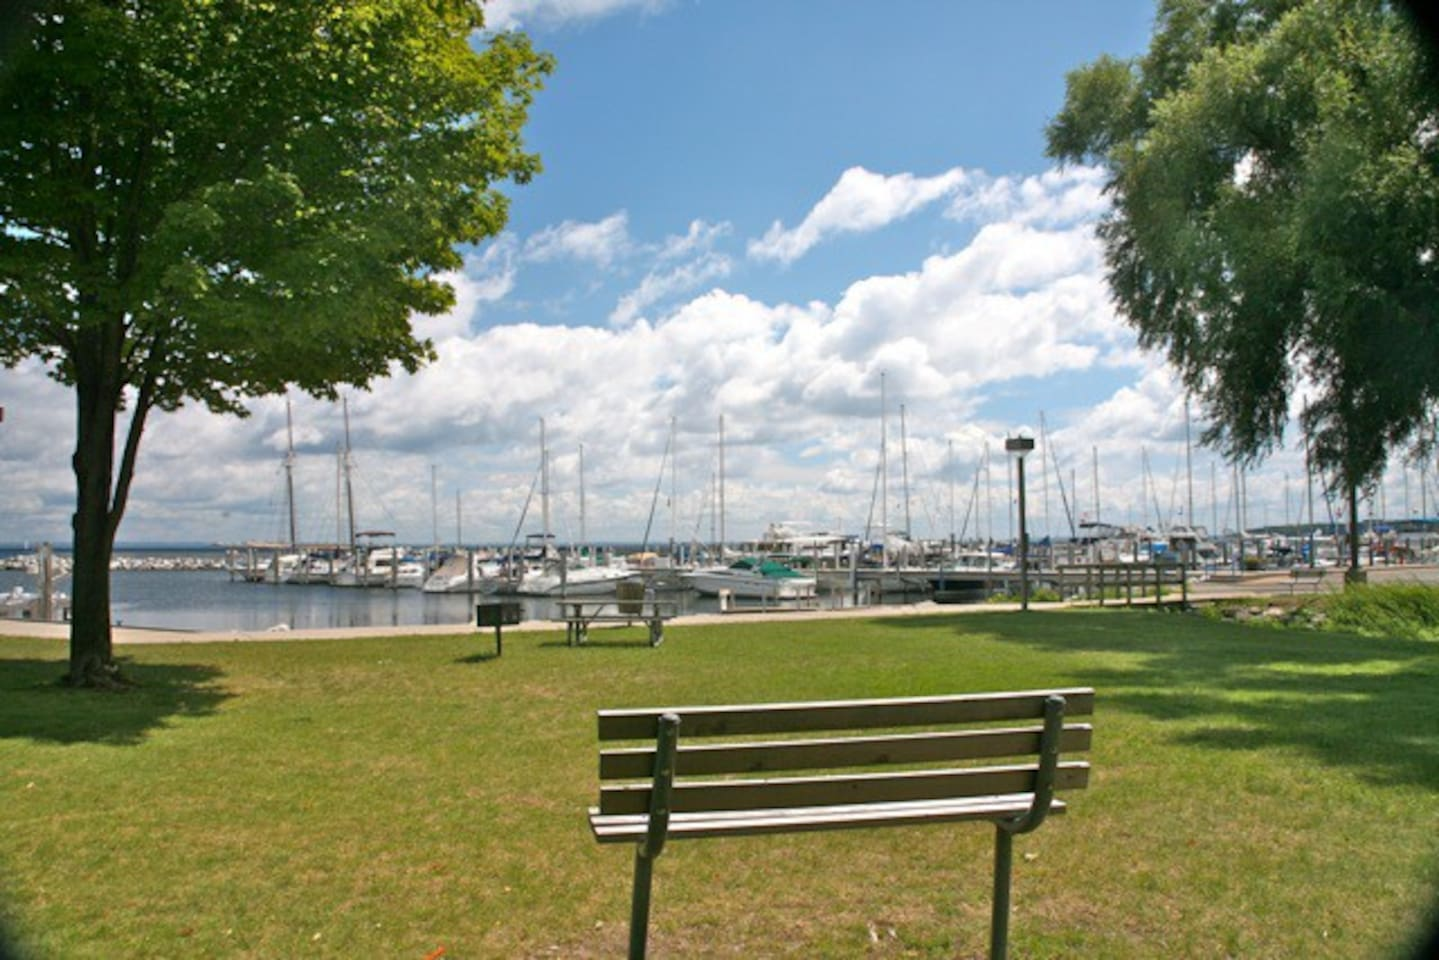 Beautiful location next to Marina in Northport near Leland , 2 bedroom 1 bath Cottage . View from cottage